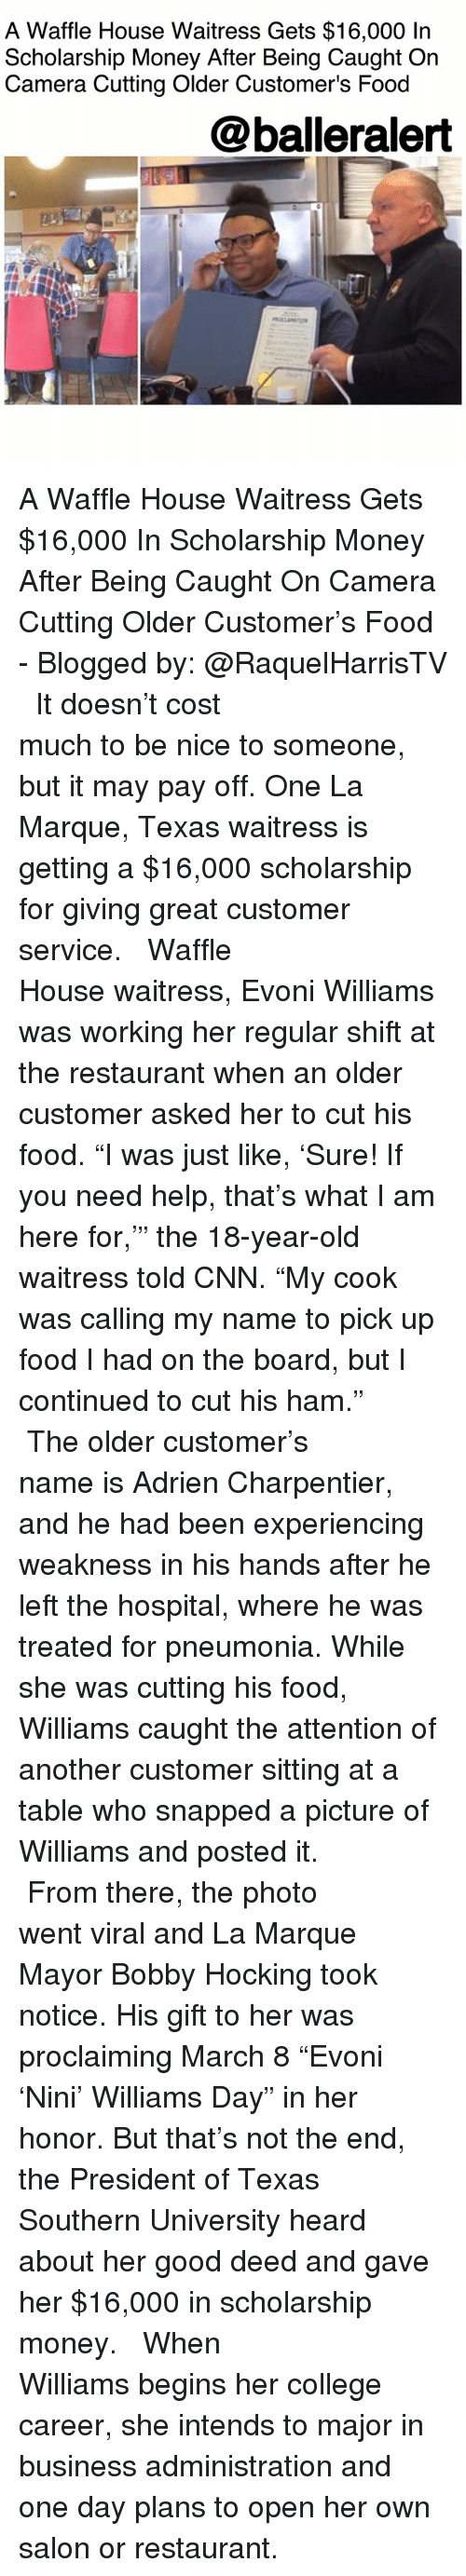 """caught on camera: A Waffle House Waitress Gets $16,000 In  Scholarship Money After Being Caught On  Camera Cutting Older Customer's Food  @balleralert A Waffle House Waitress Gets $16,000 In Scholarship Money After Being Caught On Camera Cutting Older Customer's Food - Blogged by: @RaquelHarrisTV ⠀⠀⠀⠀⠀⠀⠀⠀⠀ ⠀⠀⠀⠀⠀⠀⠀⠀⠀ It doesn't cost much to be nice to someone, but it may pay off. One La Marque, Texas waitress is getting a $16,000 scholarship for giving great customer service. ⠀⠀⠀⠀⠀⠀⠀⠀⠀ ⠀⠀⠀⠀⠀⠀⠀⠀⠀ Waffle House waitress, Evoni Williams was working her regular shift at the restaurant when an older customer asked her to cut his food. """"I was just like, 'Sure! If you need help, that's what I am here for,'"""" the 18-year-old waitress told CNN. """"My cook was calling my name to pick up food I had on the board, but I continued to cut his ham."""" ⠀⠀⠀⠀⠀⠀⠀⠀⠀ ⠀⠀⠀⠀⠀⠀⠀⠀⠀ The older customer's name is Adrien Charpentier, and he had been experiencing weakness in his hands after he left the hospital, where he was treated for pneumonia. While she was cutting his food, Williams caught the attention of another customer sitting at a table who snapped a picture of Williams and posted it. ⠀⠀⠀⠀⠀⠀⠀⠀⠀ ⠀⠀⠀⠀⠀⠀⠀⠀⠀ From there, the photo went viral and La Marque Mayor Bobby Hocking took notice. His gift to her was proclaiming March 8 """"Evoni 'Nini' Williams Day"""" in her honor. But that's not the end, the President of Texas Southern University heard about her good deed and gave her $16,000 in scholarship money. ⠀⠀⠀⠀⠀⠀⠀⠀⠀ ⠀⠀⠀⠀⠀⠀⠀⠀⠀ When Williams begins her college career, she intends to major in business administration and one day plans to open her own salon or restaurant."""